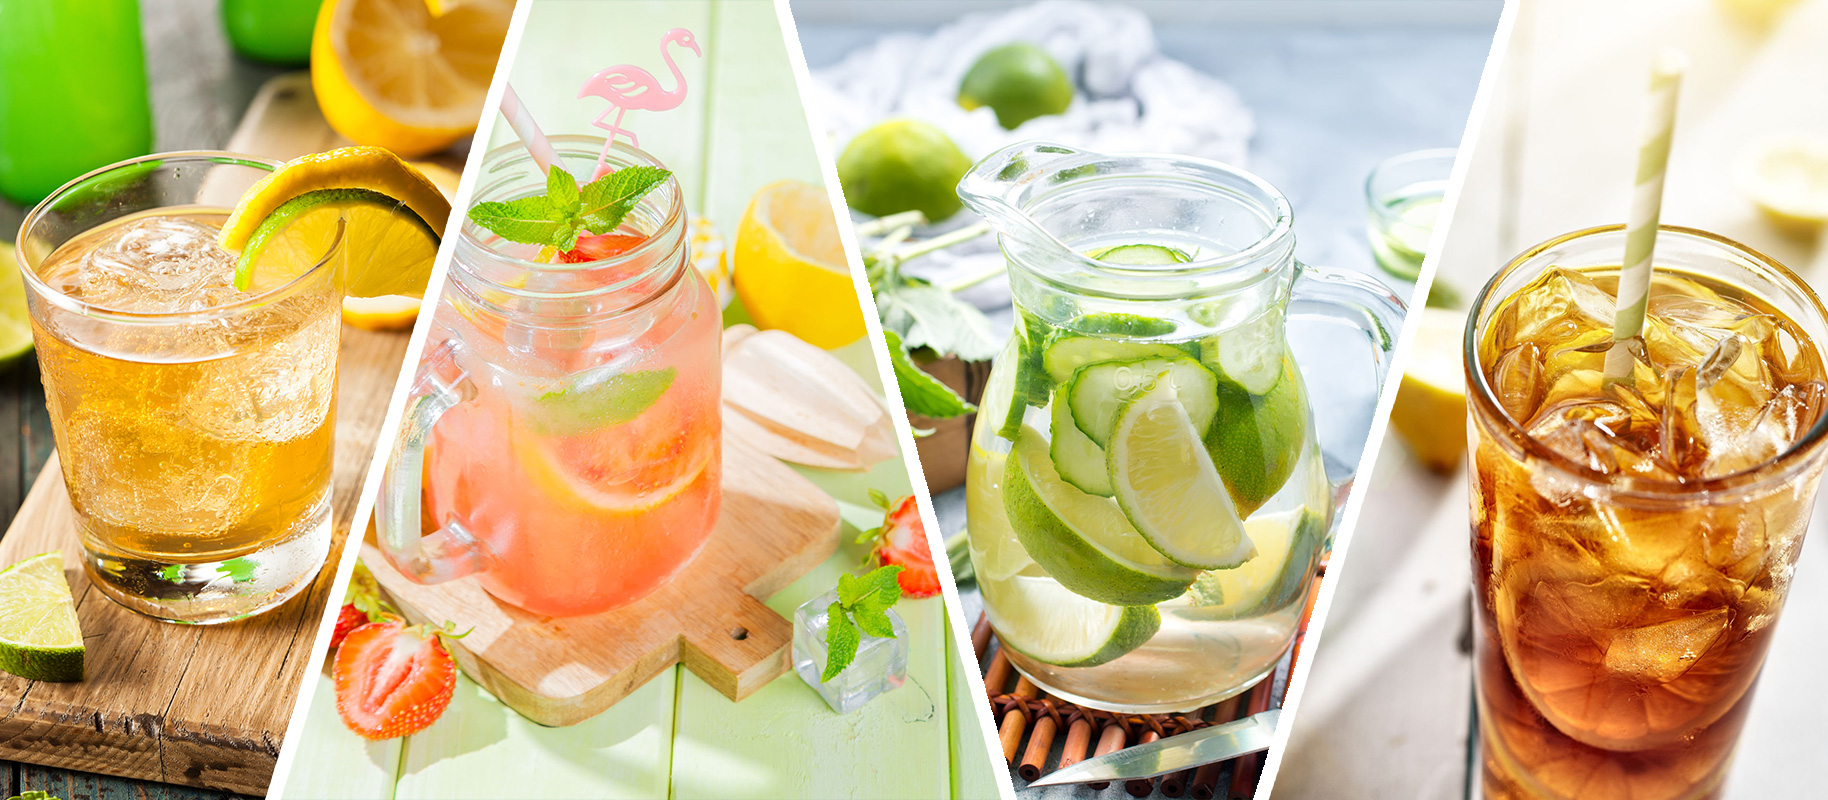 SUMMER SIPS to Pair with Your Homemade Meals